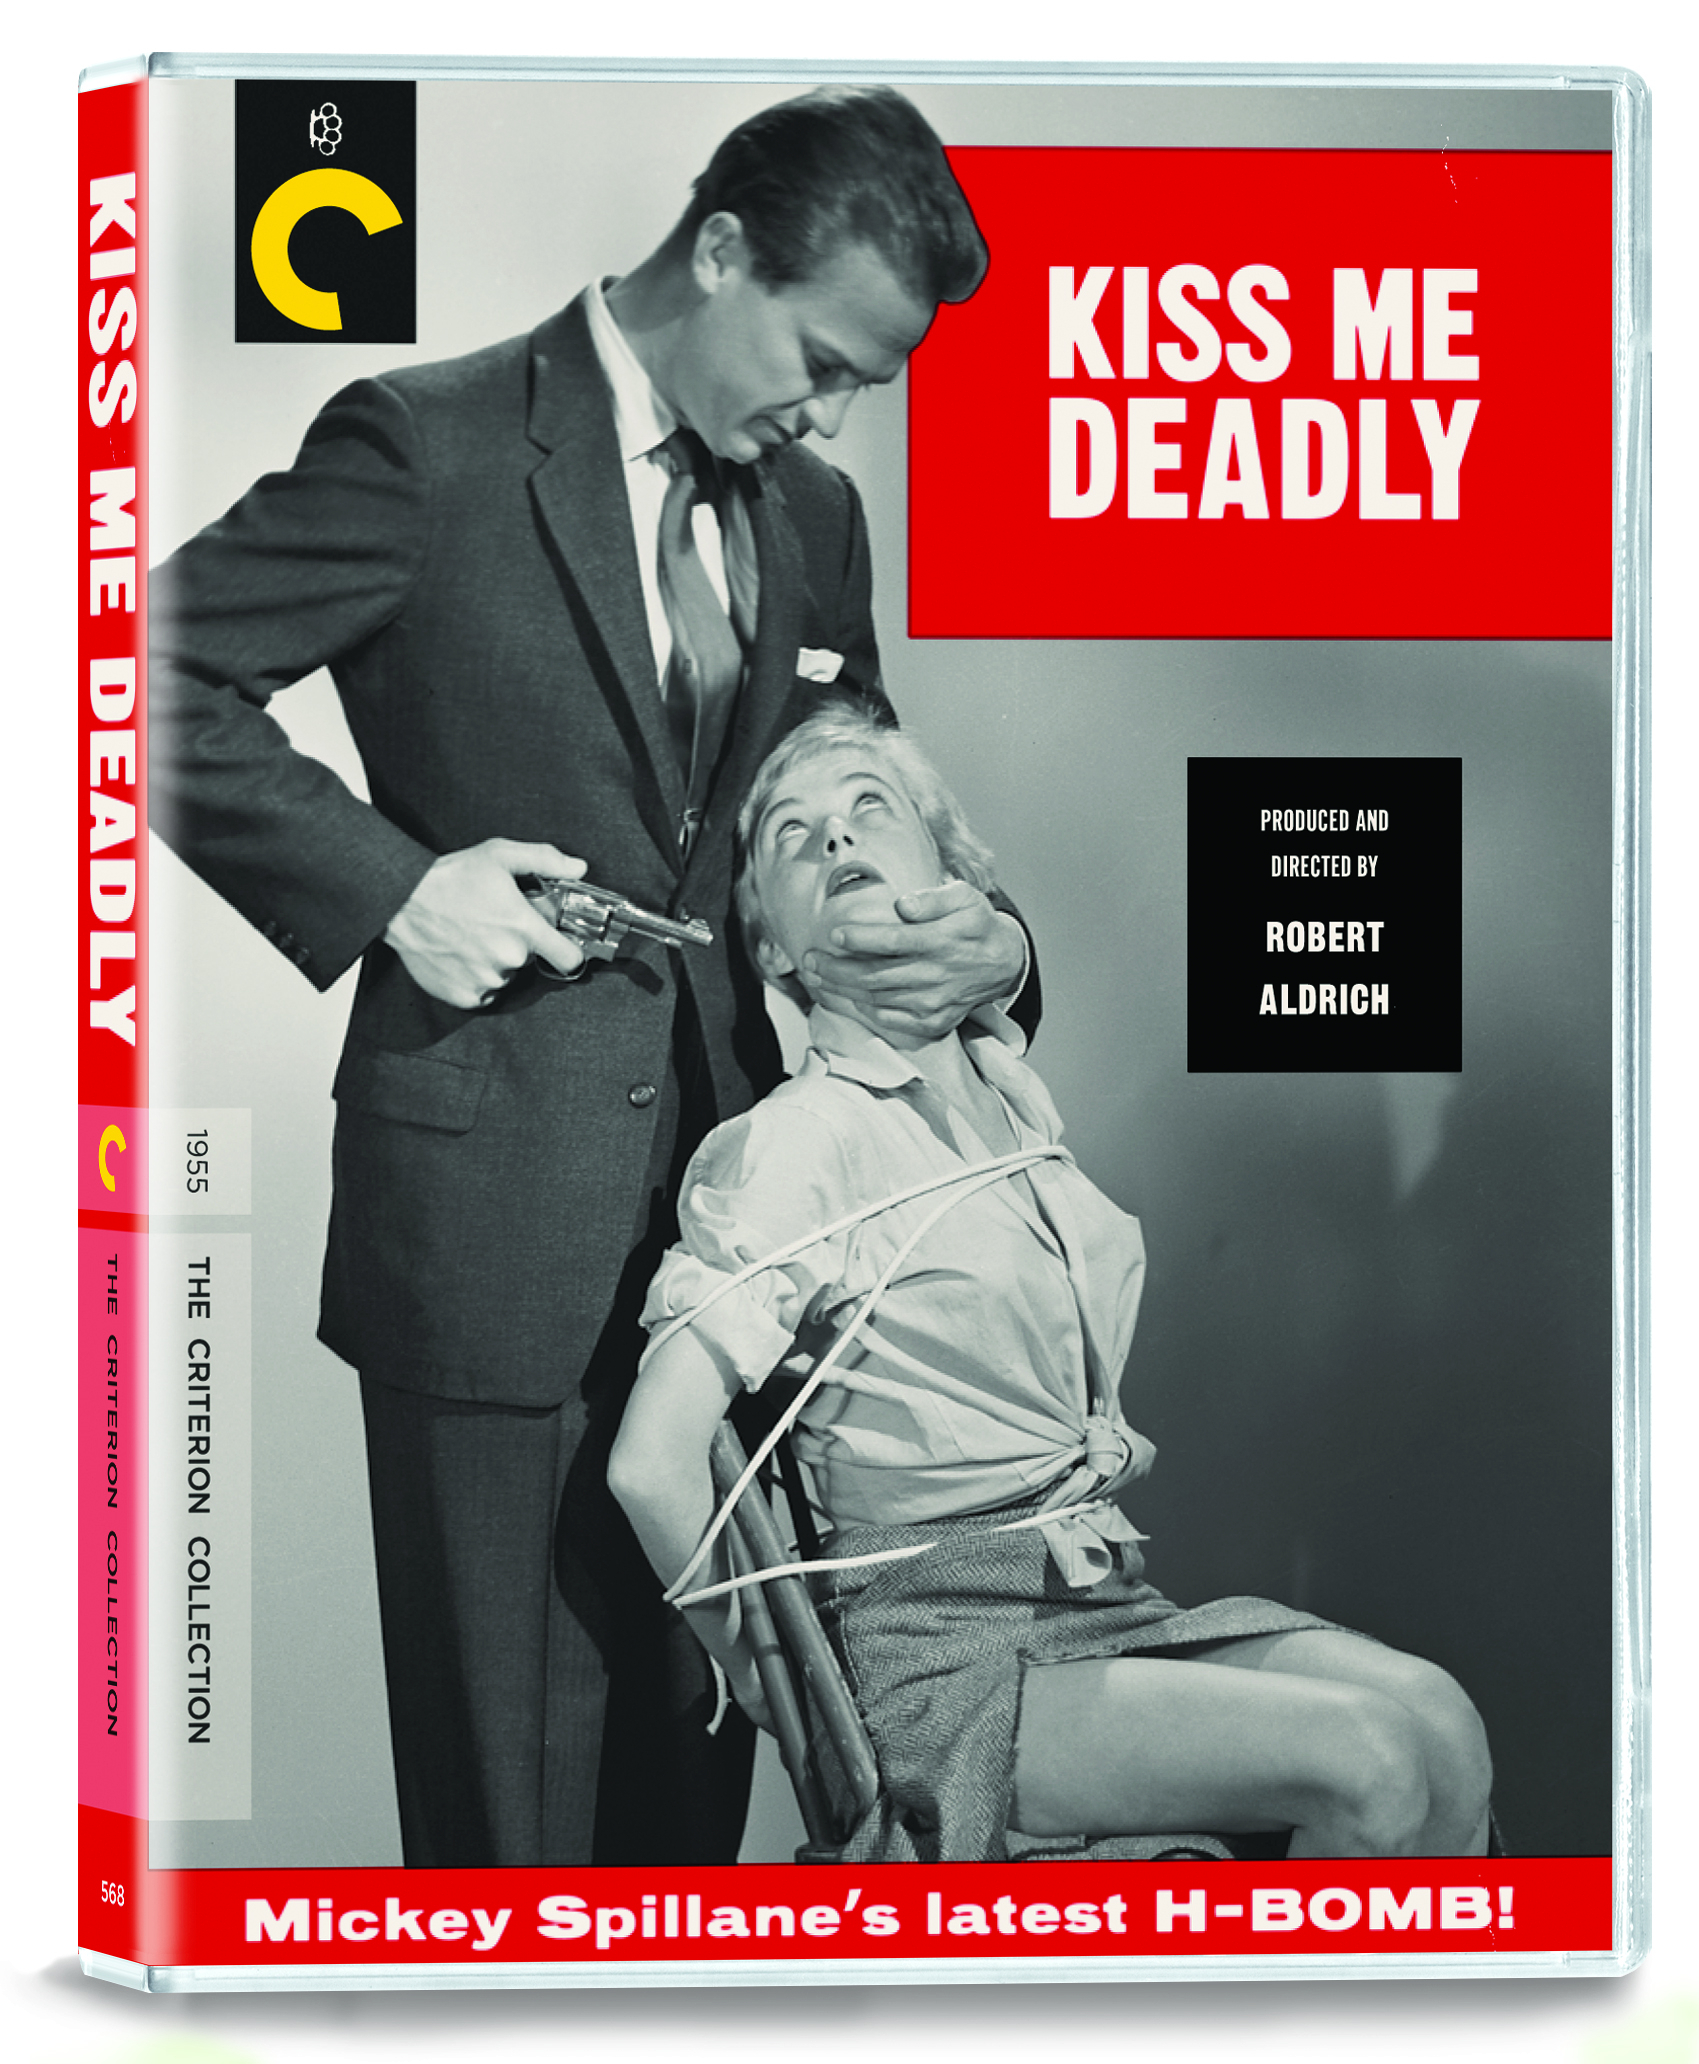 Buy PRE-ORDER Kiss Me Deadly (Blu-ray)